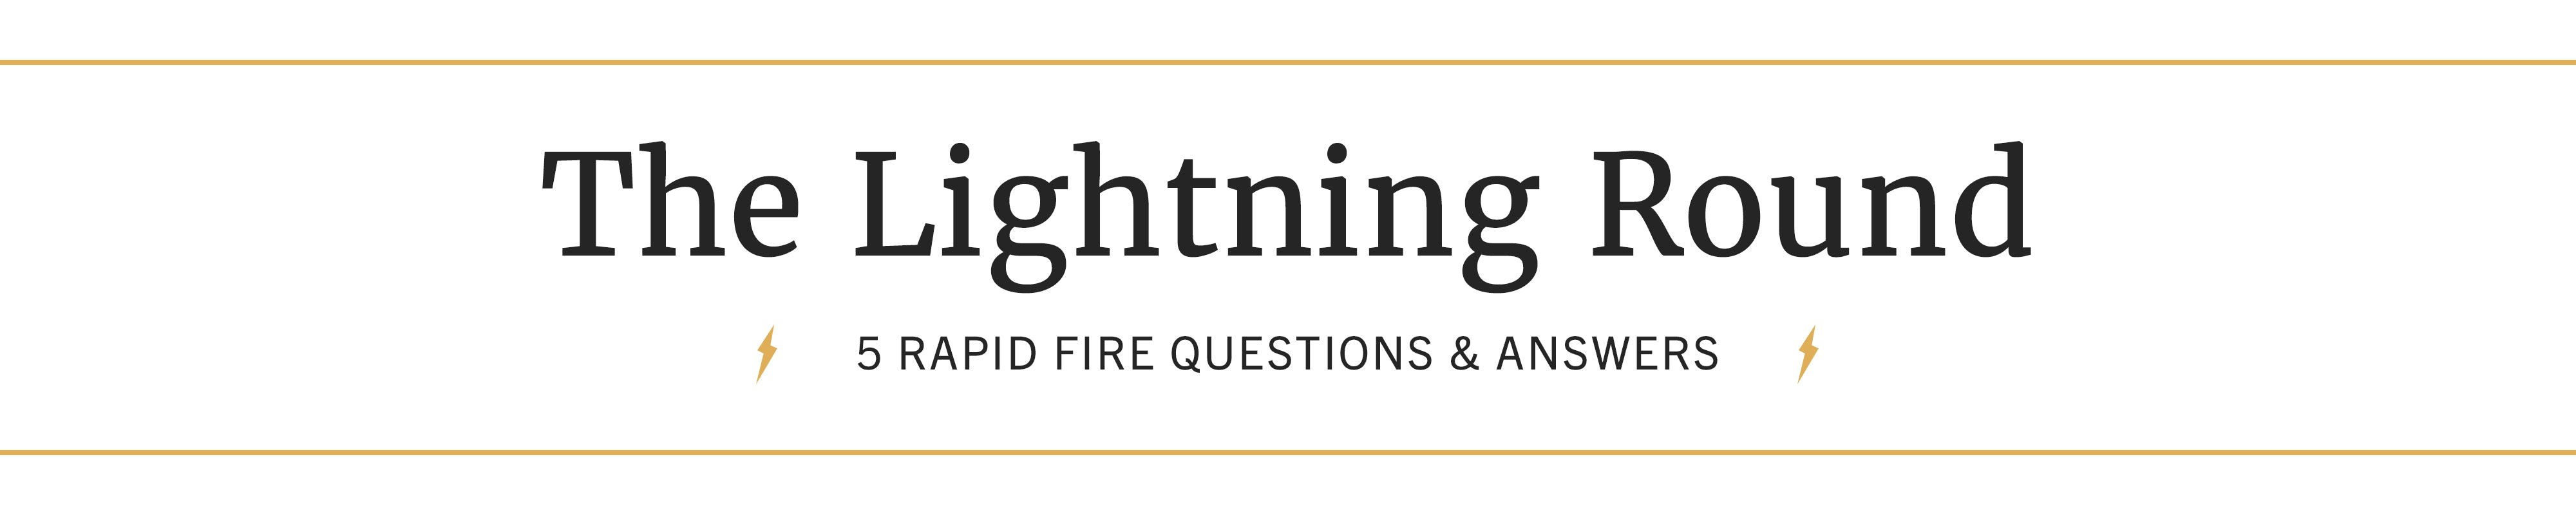 The Lightning Round - 5 Rapid Fire Questions and Answers